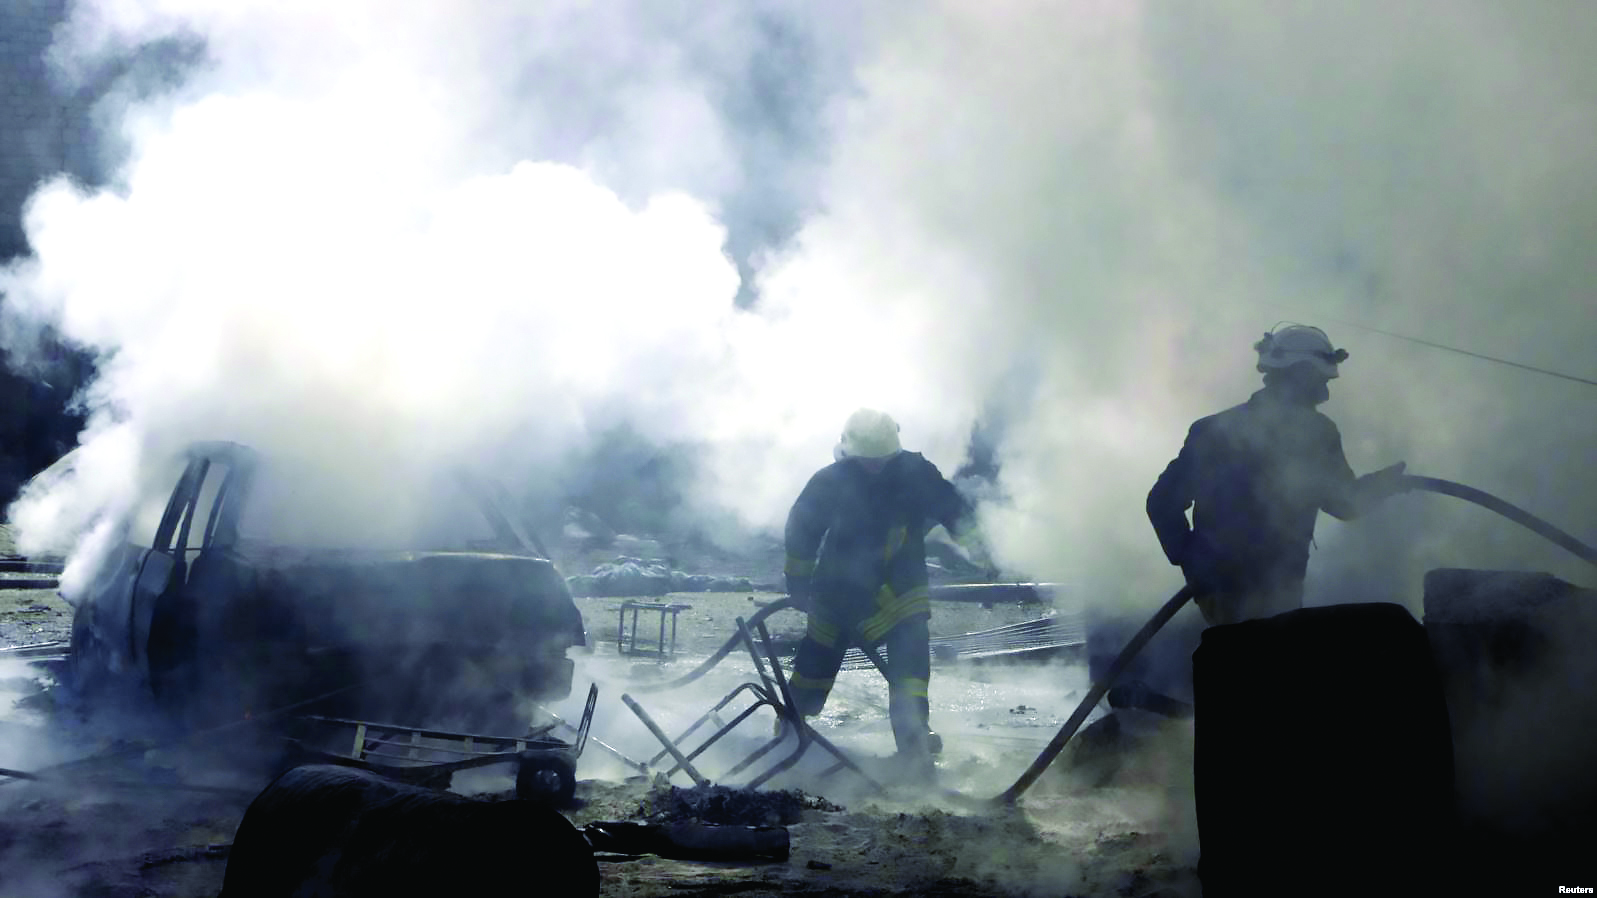 Civil Defense teams at a site bombed by the Syrian regime forces in Qazi Askar neighborhood in Aleppo - March 5, 2015 (Reuters)